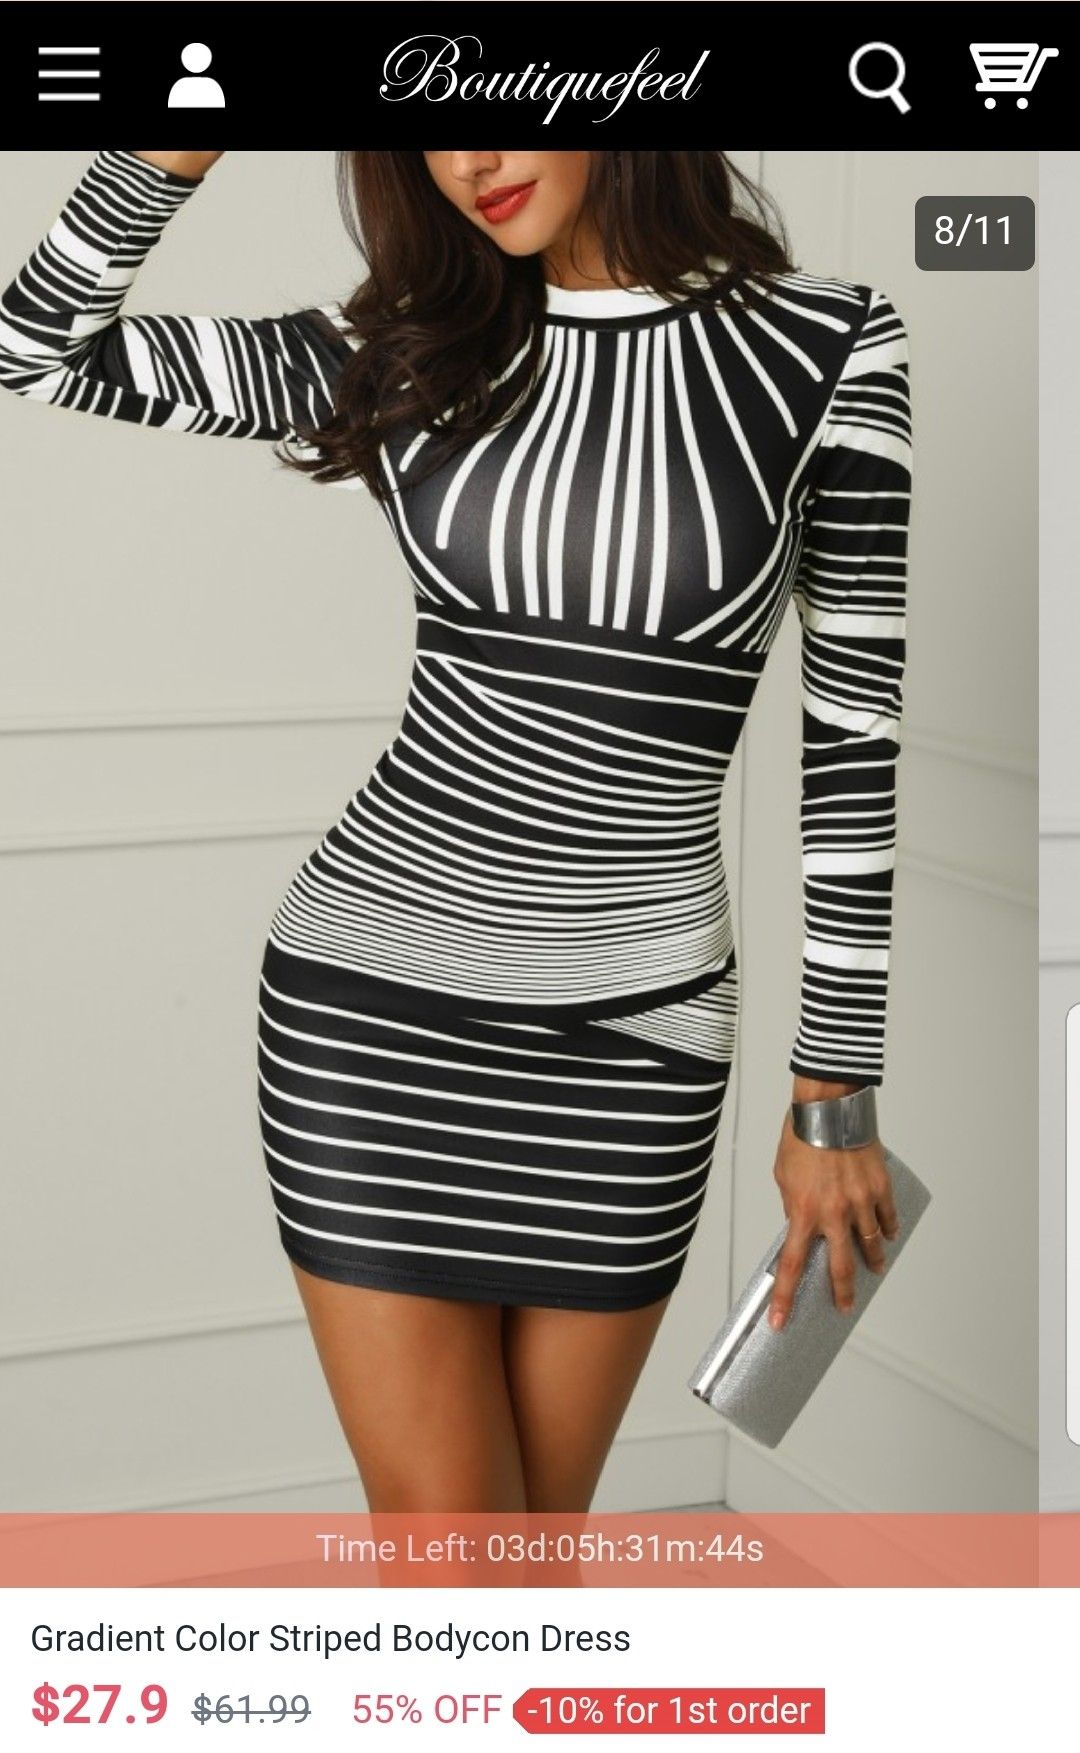 ffb5c245537 ... you along with your besties. Designer Party Dresses